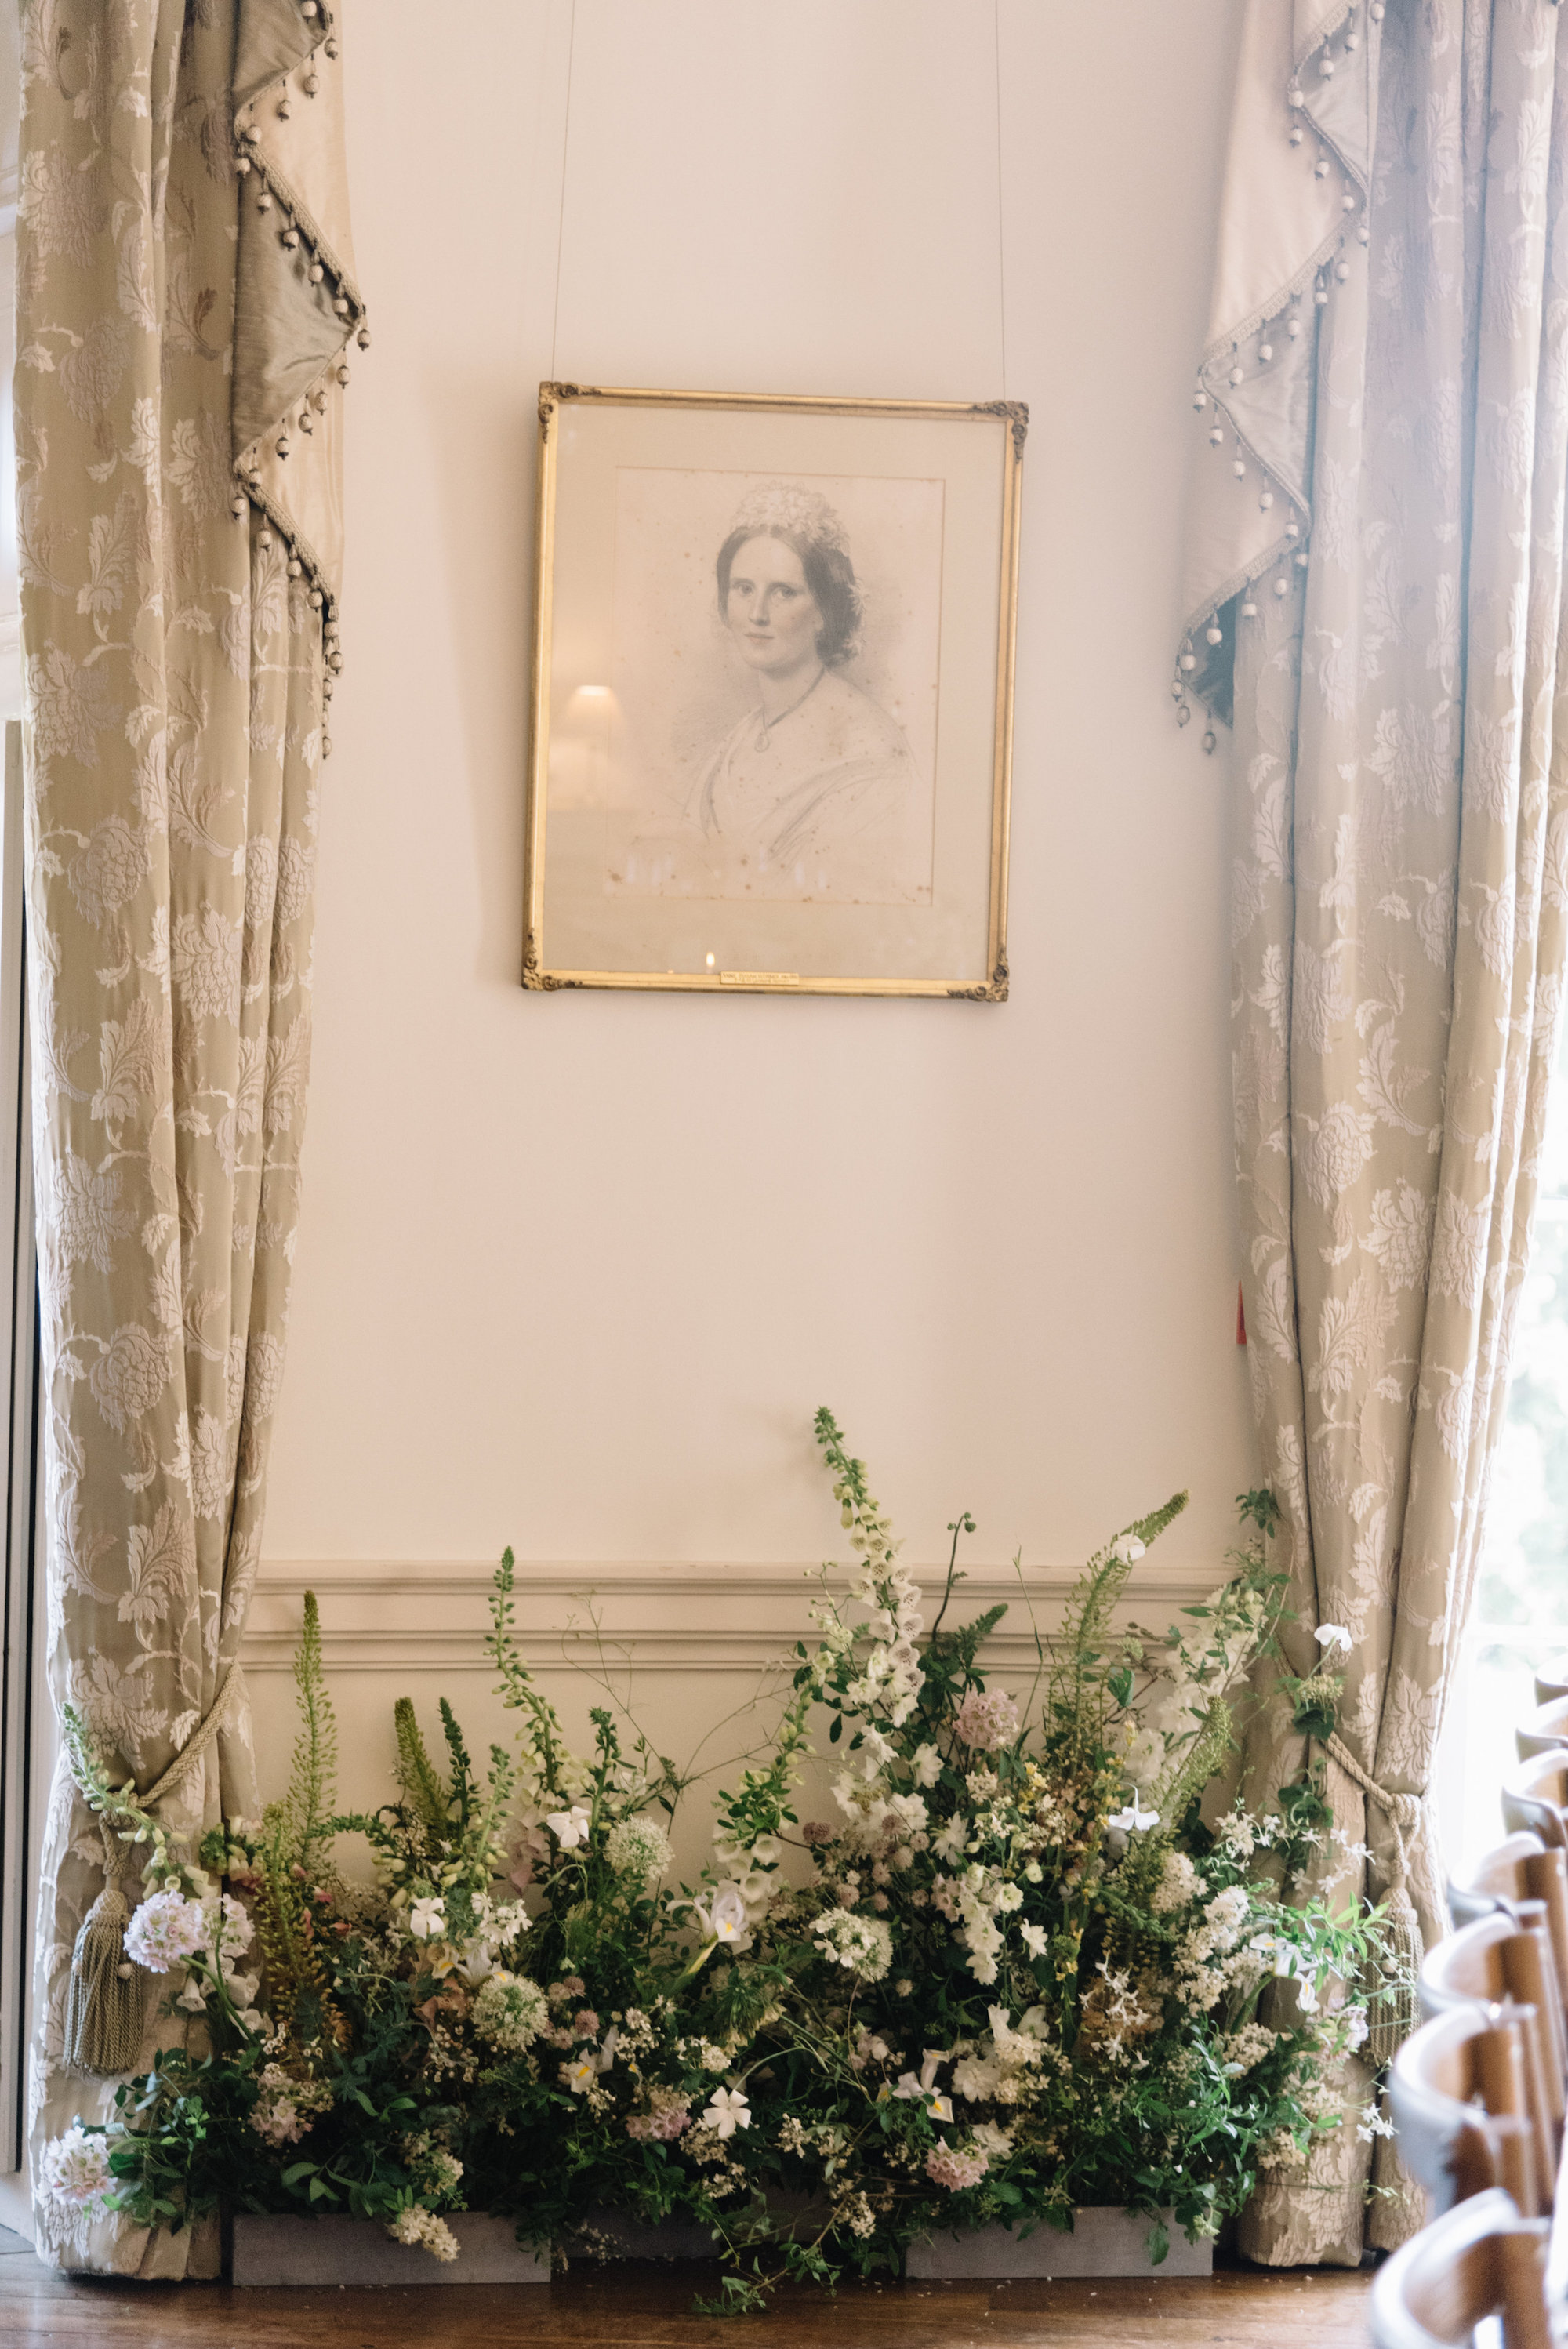 Luxury Wedding Planner UK | Jennifer & Timothy's English Country Manor Wedding | Soft Pink Pale Blue White and Silver Toned Green Neutral Tones American Bride North Cadbury Court | Nicole Colwell Photography 1286.jpg